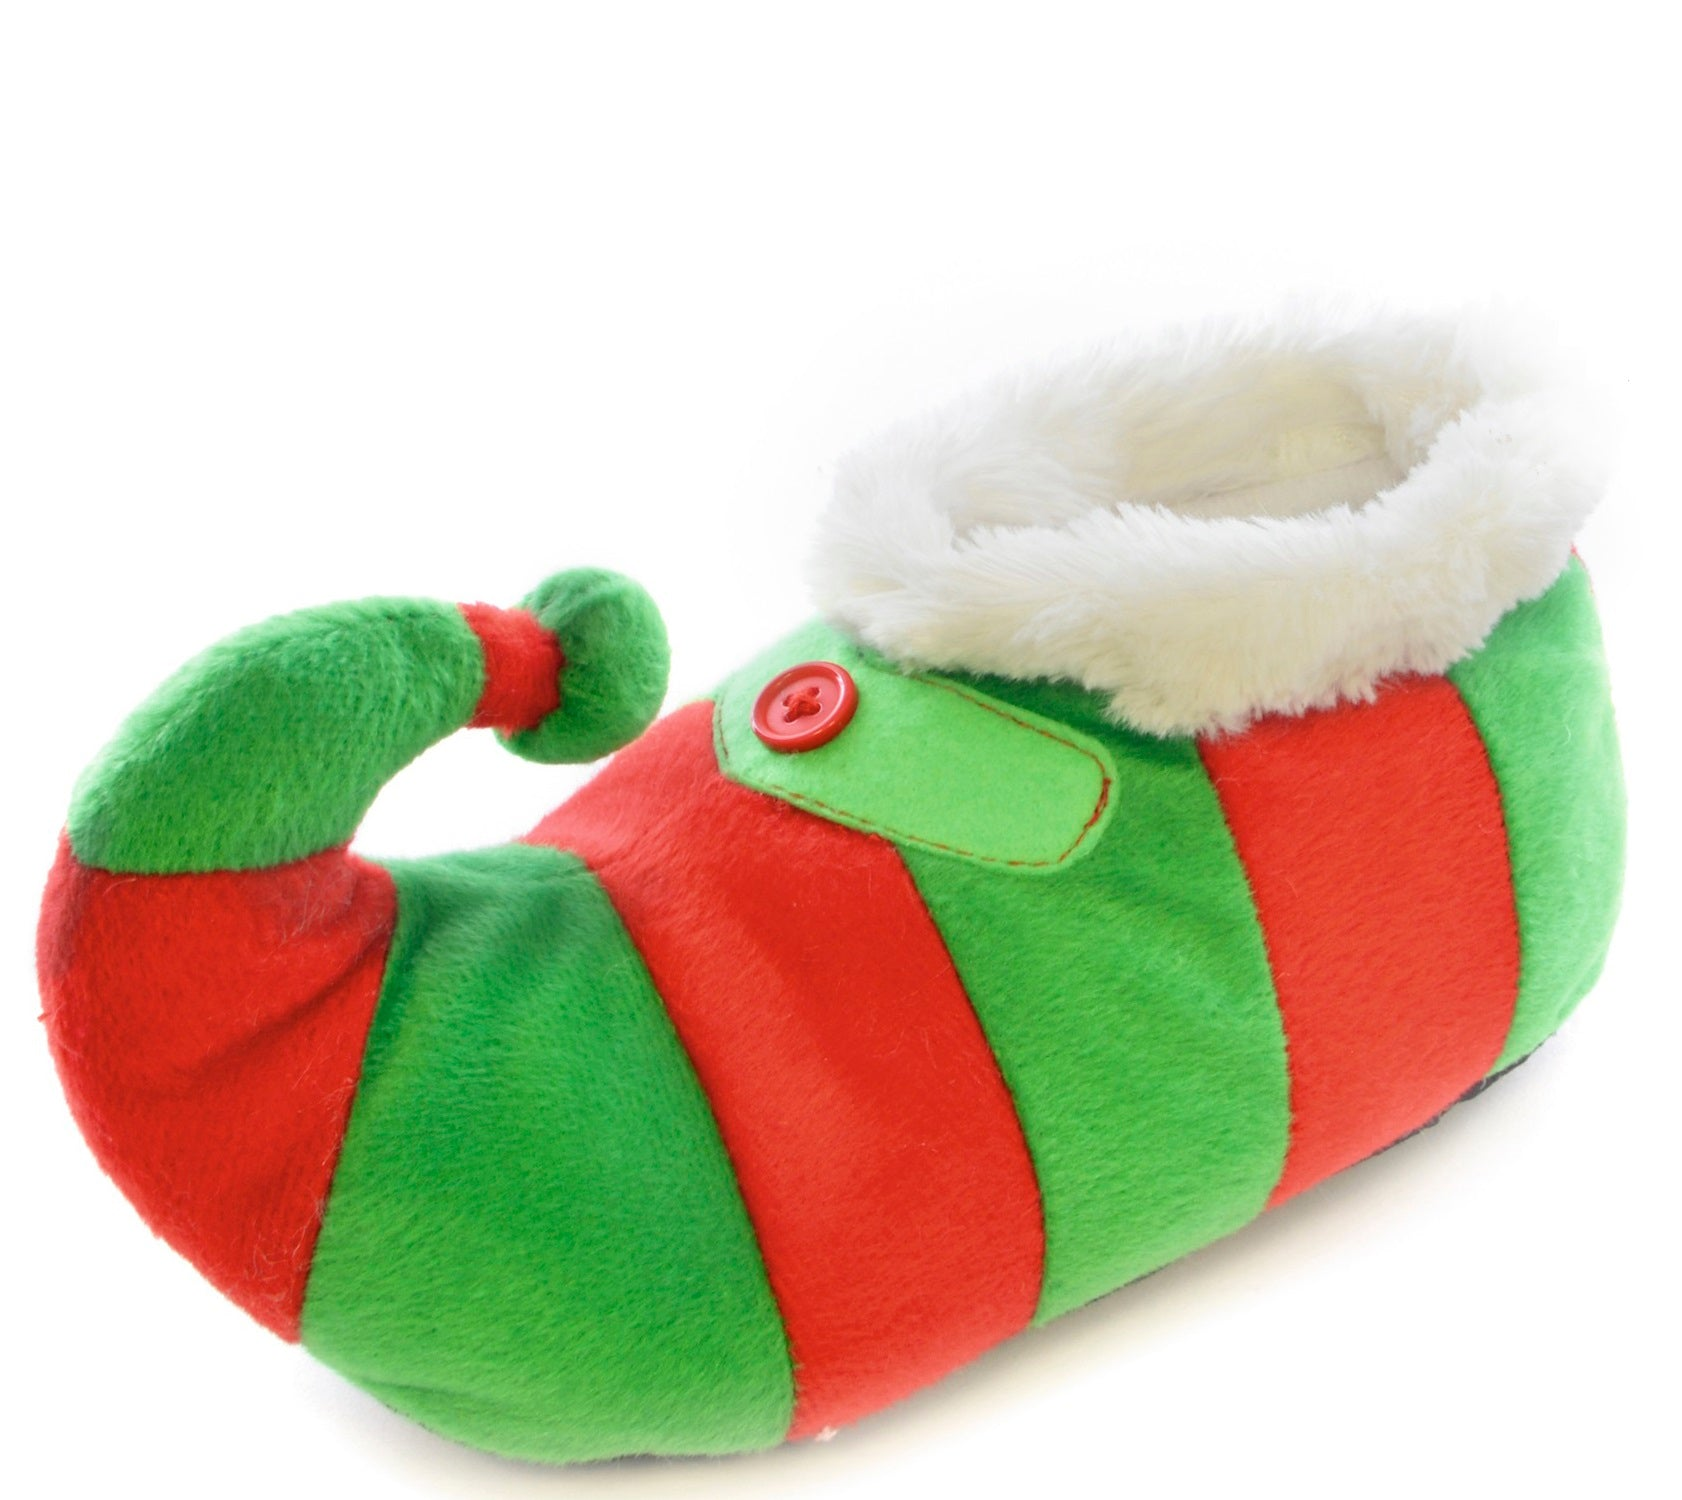 OCTAVE Girls Boys Kids Unisex Novelty Christmas Elf Slippers